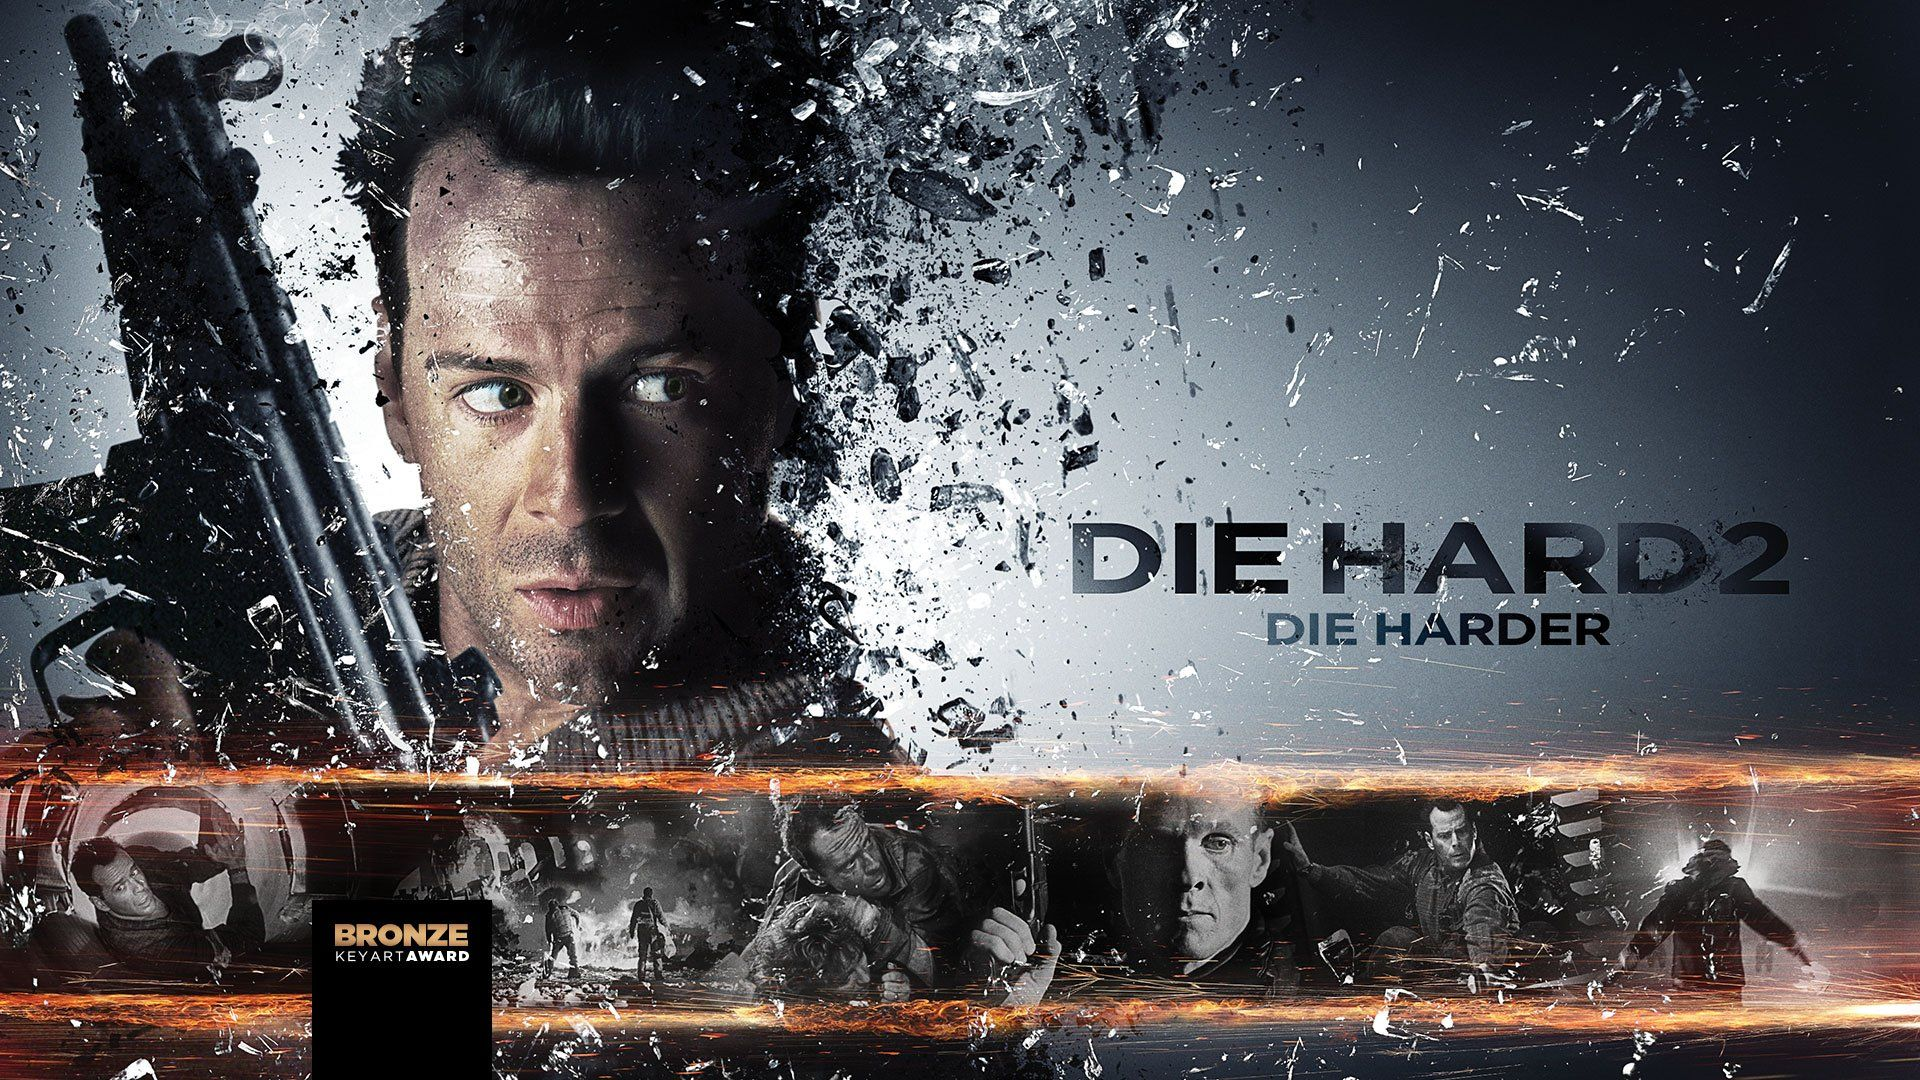 Die Hard 2 Die Harder Die Hard Die Hard